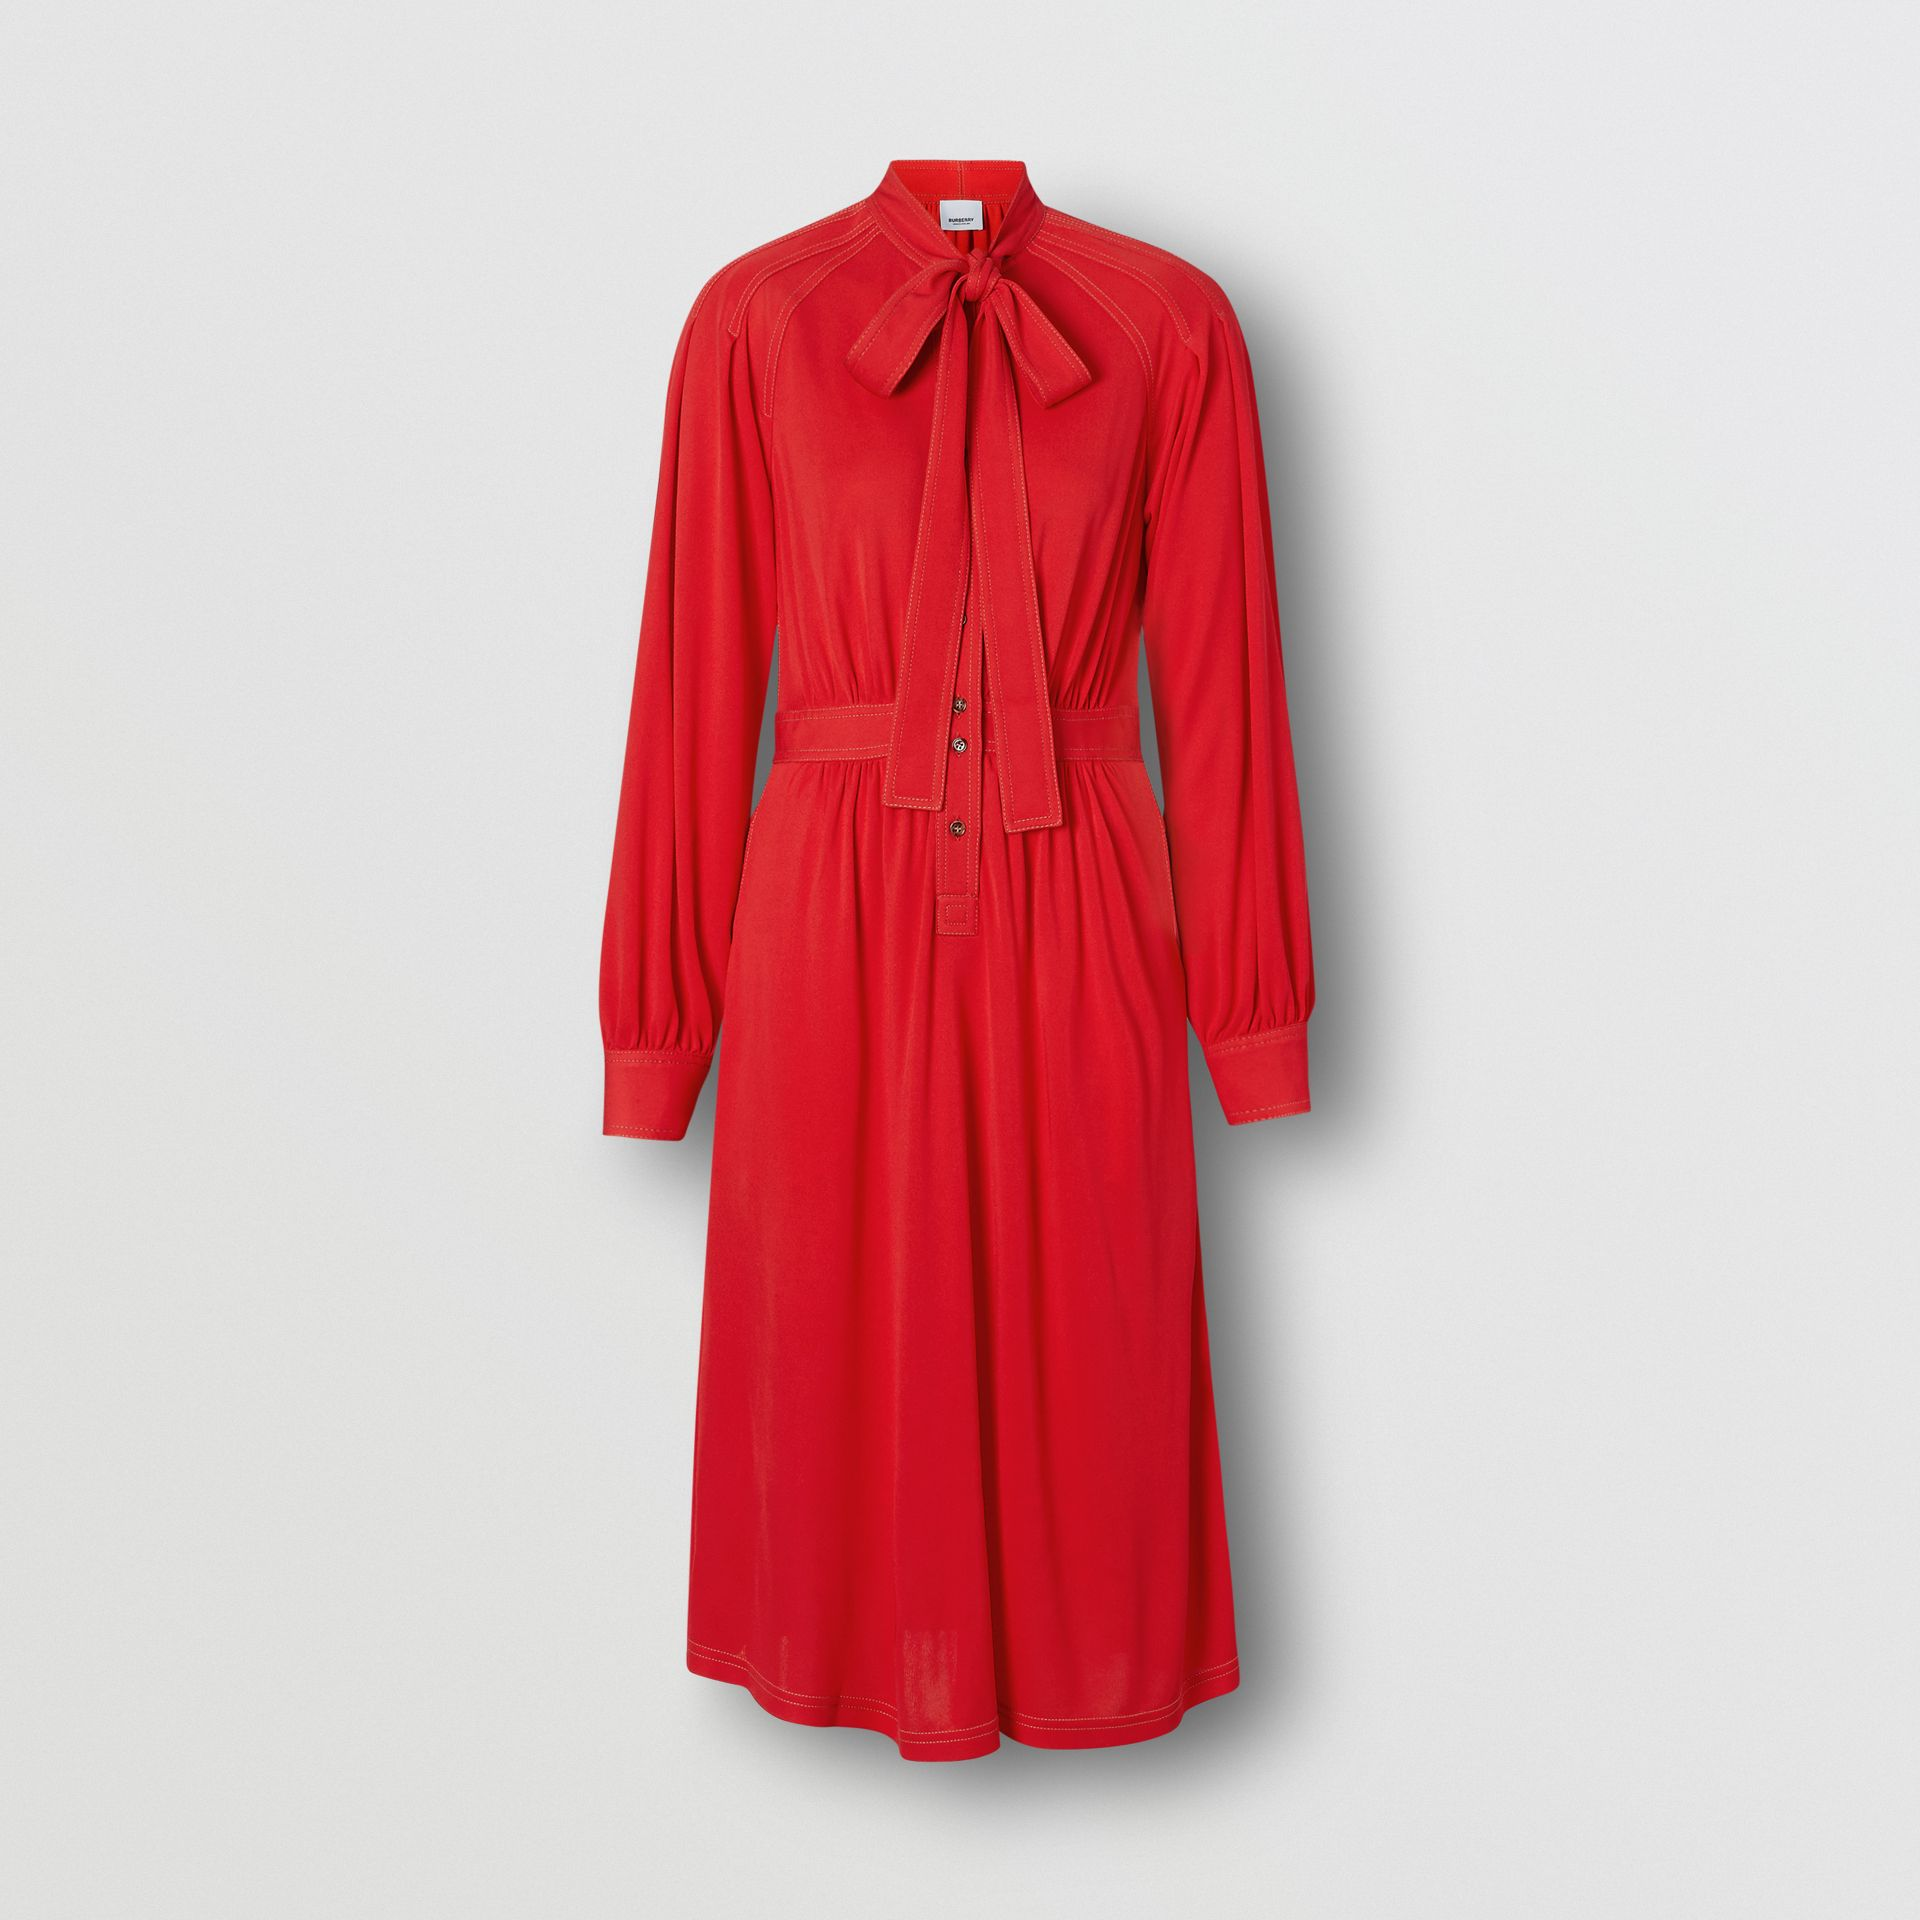 Topstitch Detail Jersey Tie-neck Dress in Bright Red - Women | Burberry - gallery image 3